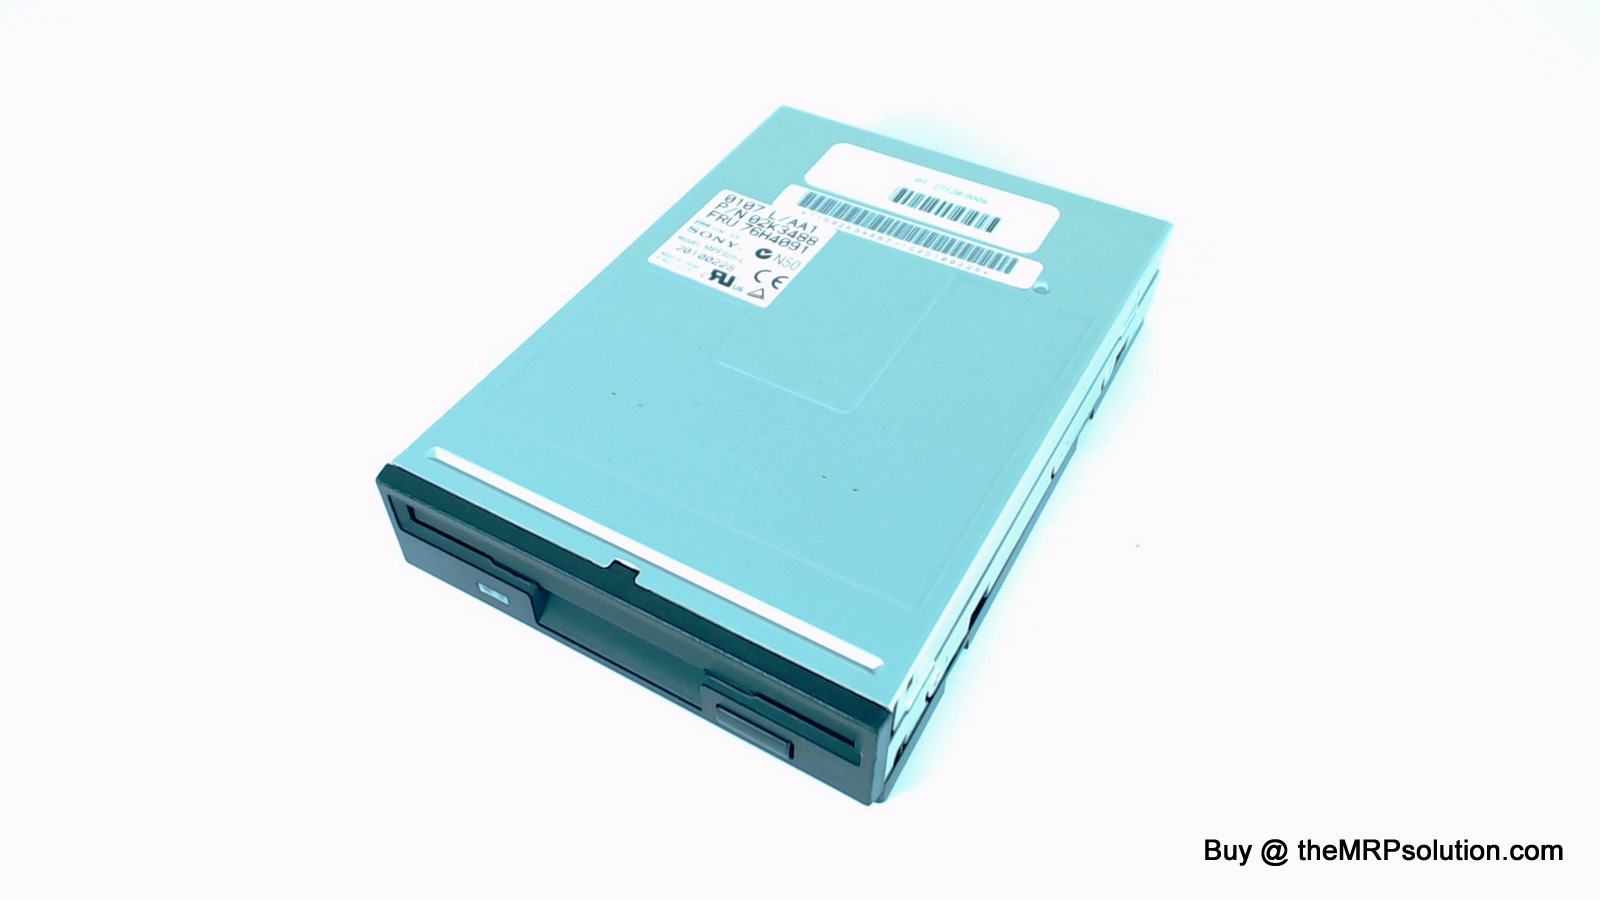 IBM 02K3488 DISKETTE DRIVE, 7026-H80 Refurbished